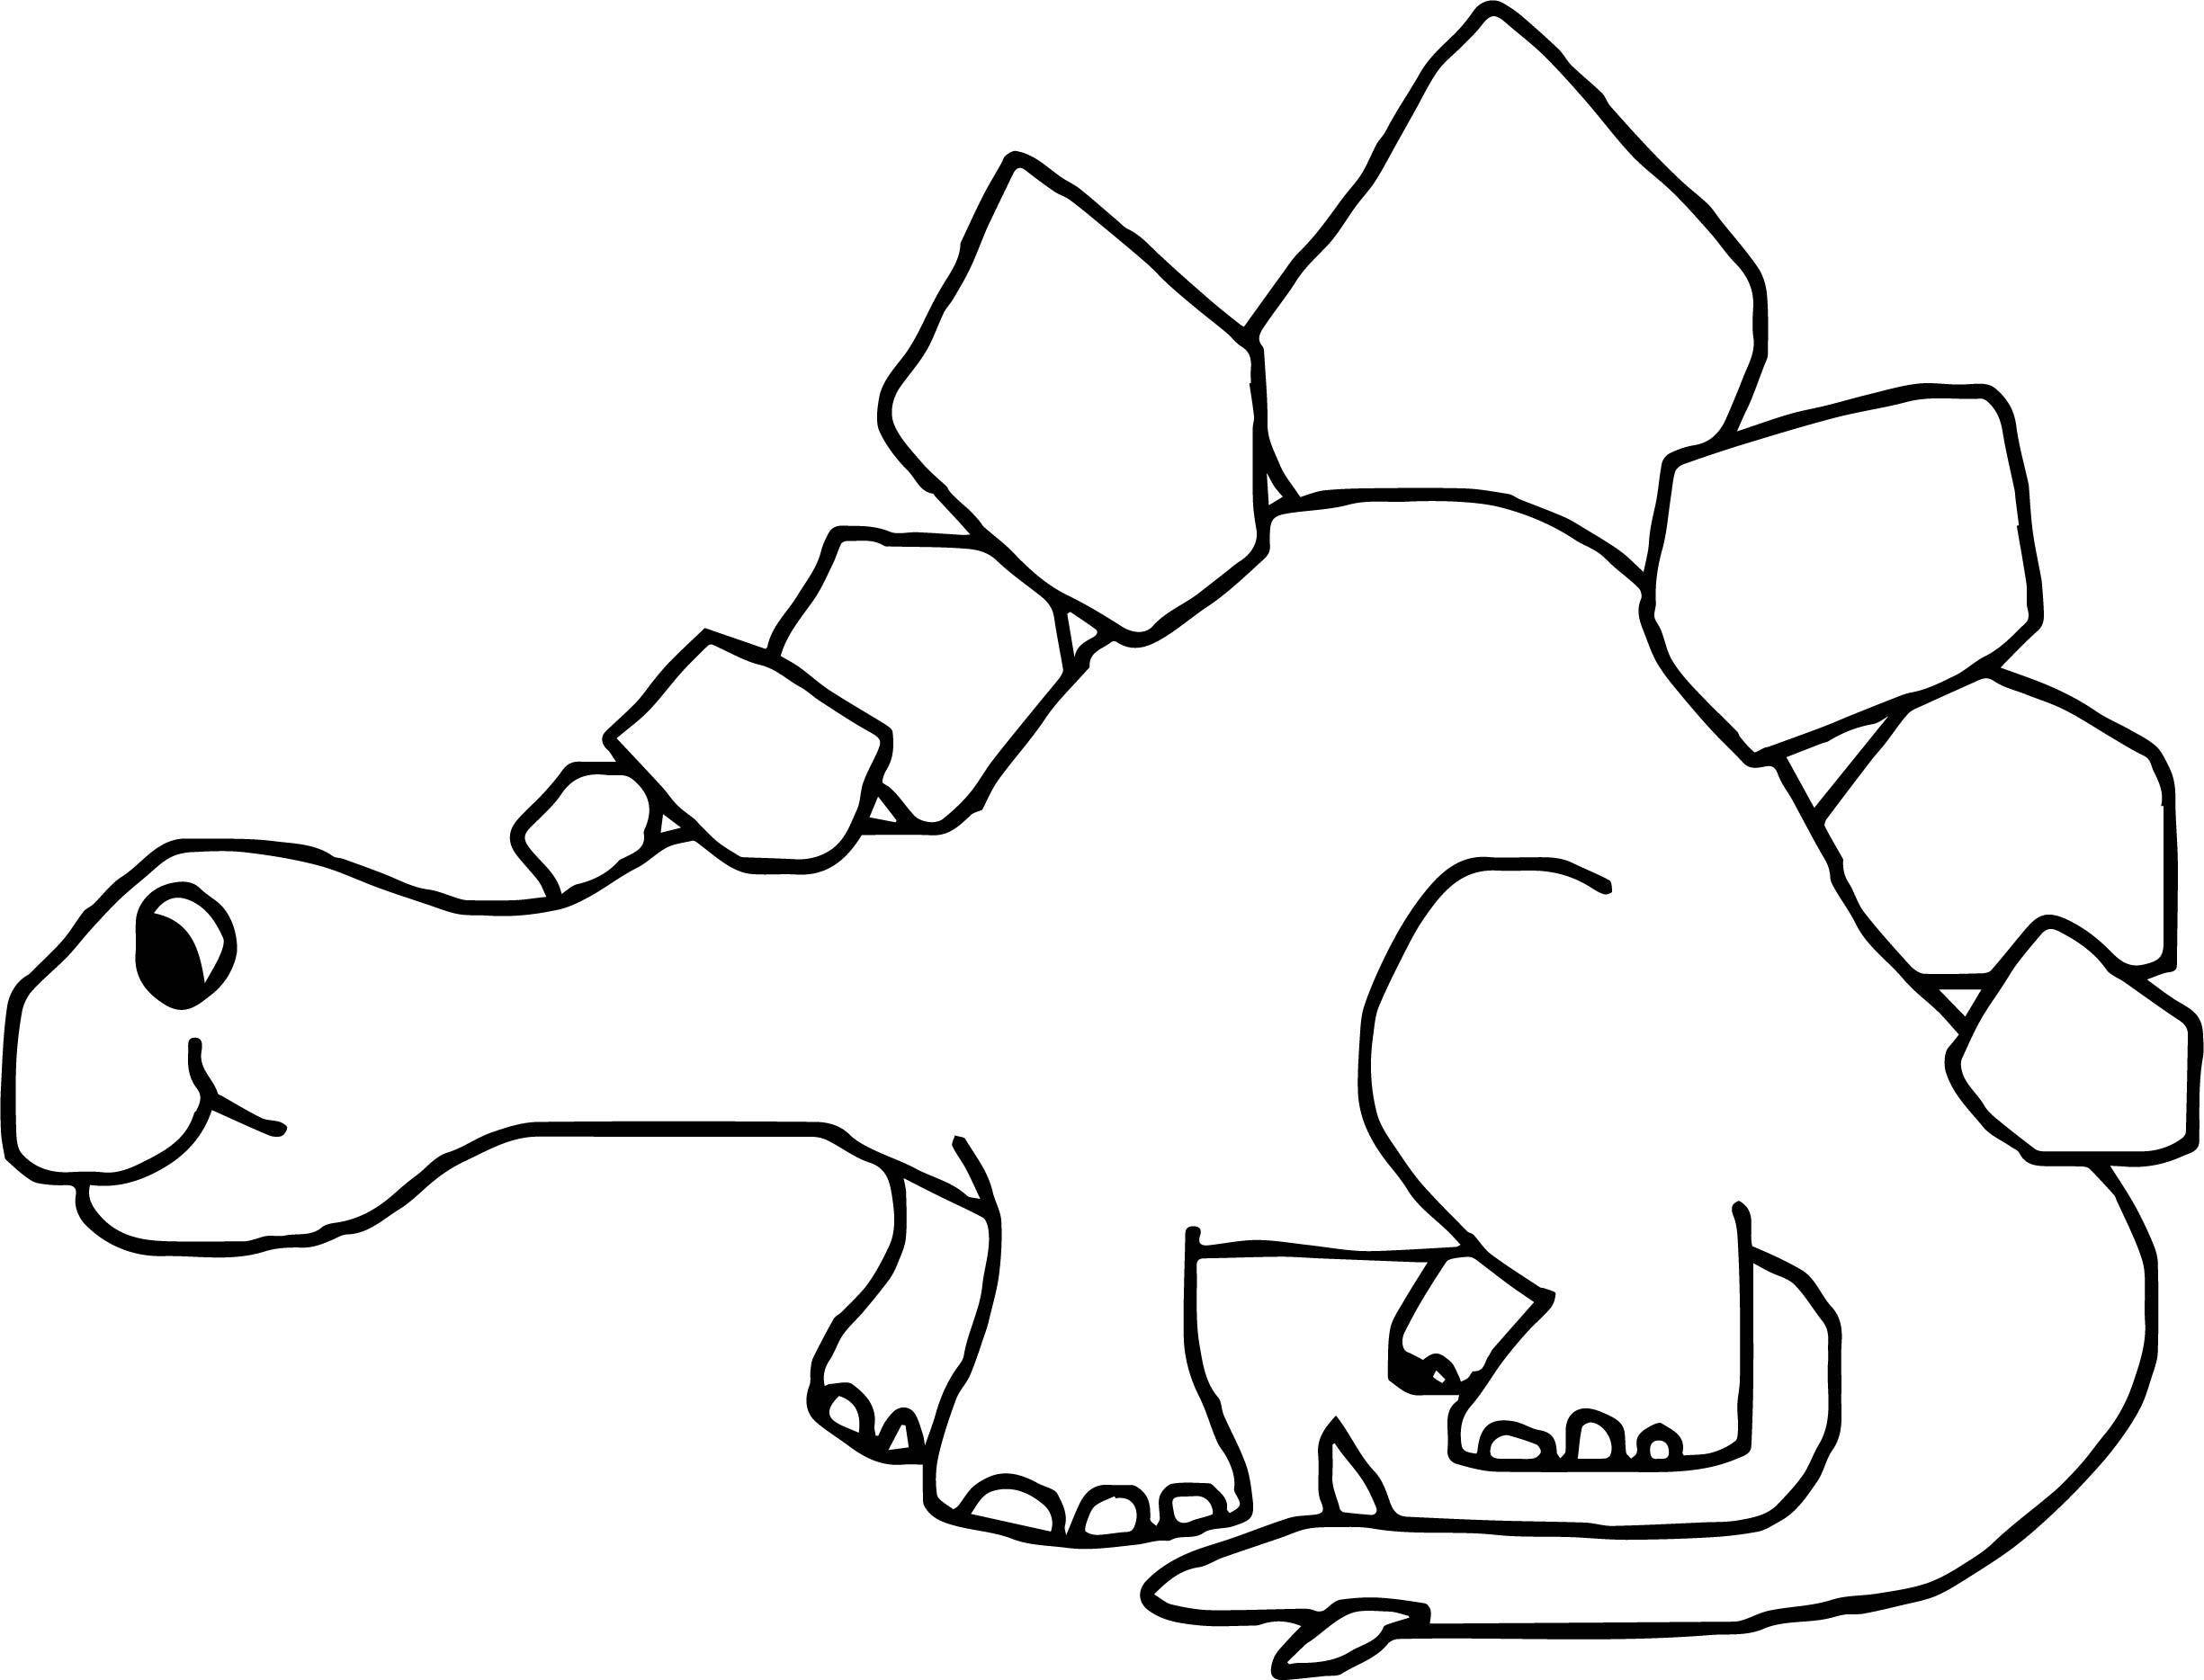 Dinosaur Wecoloringpage Coloring Page 061